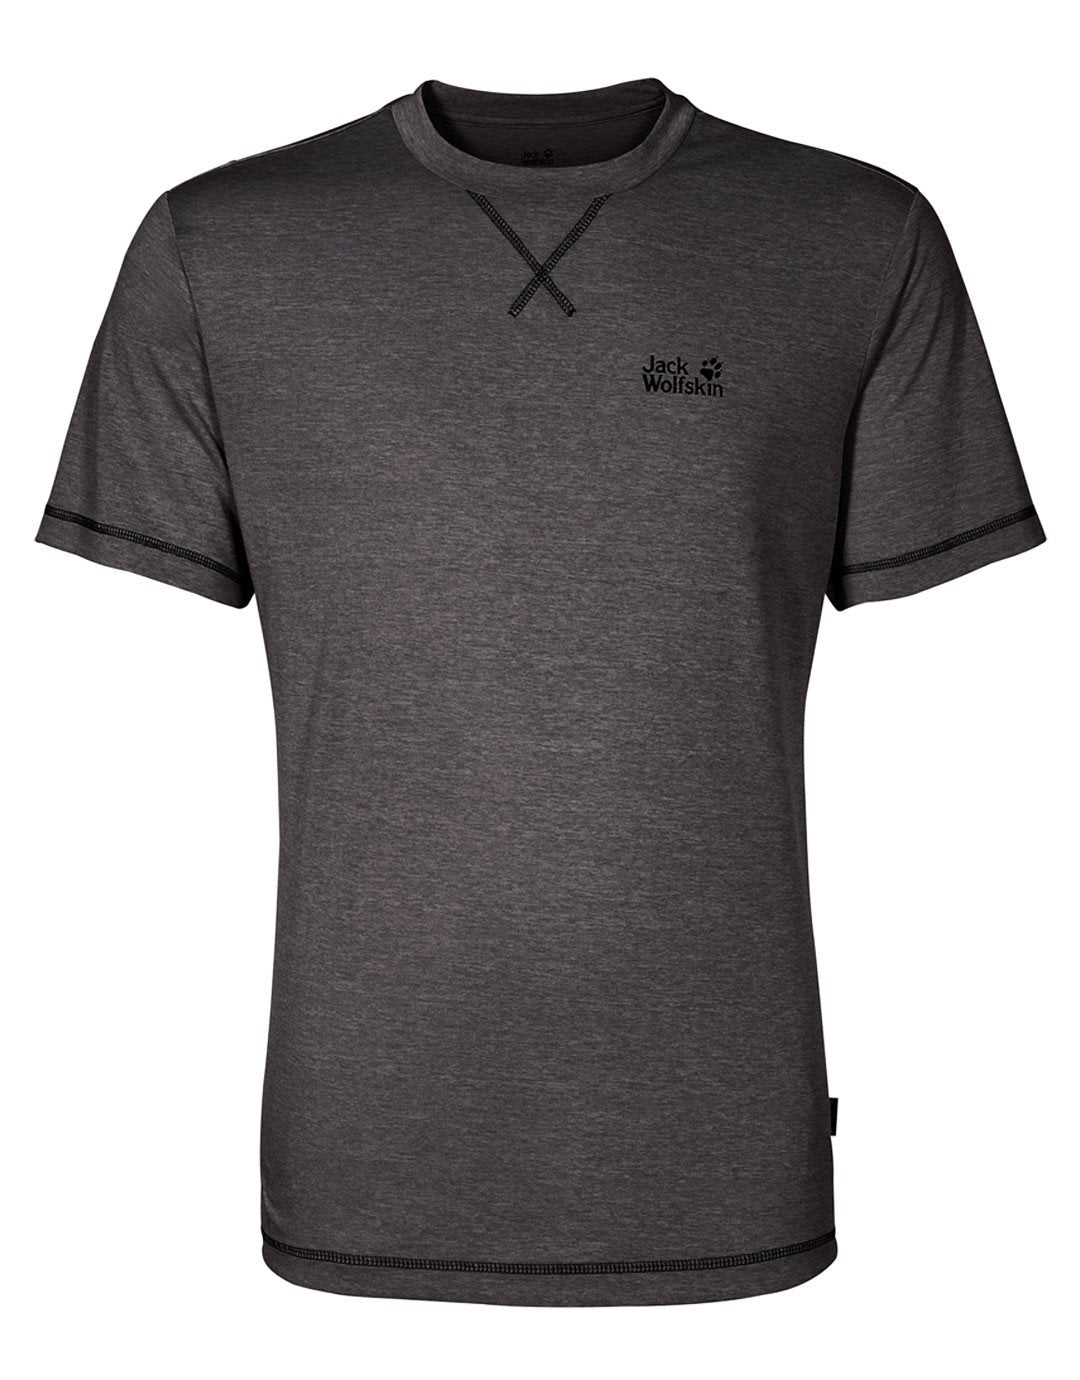 Mens Crosstrail Tee - Dark Steel - Large Grey